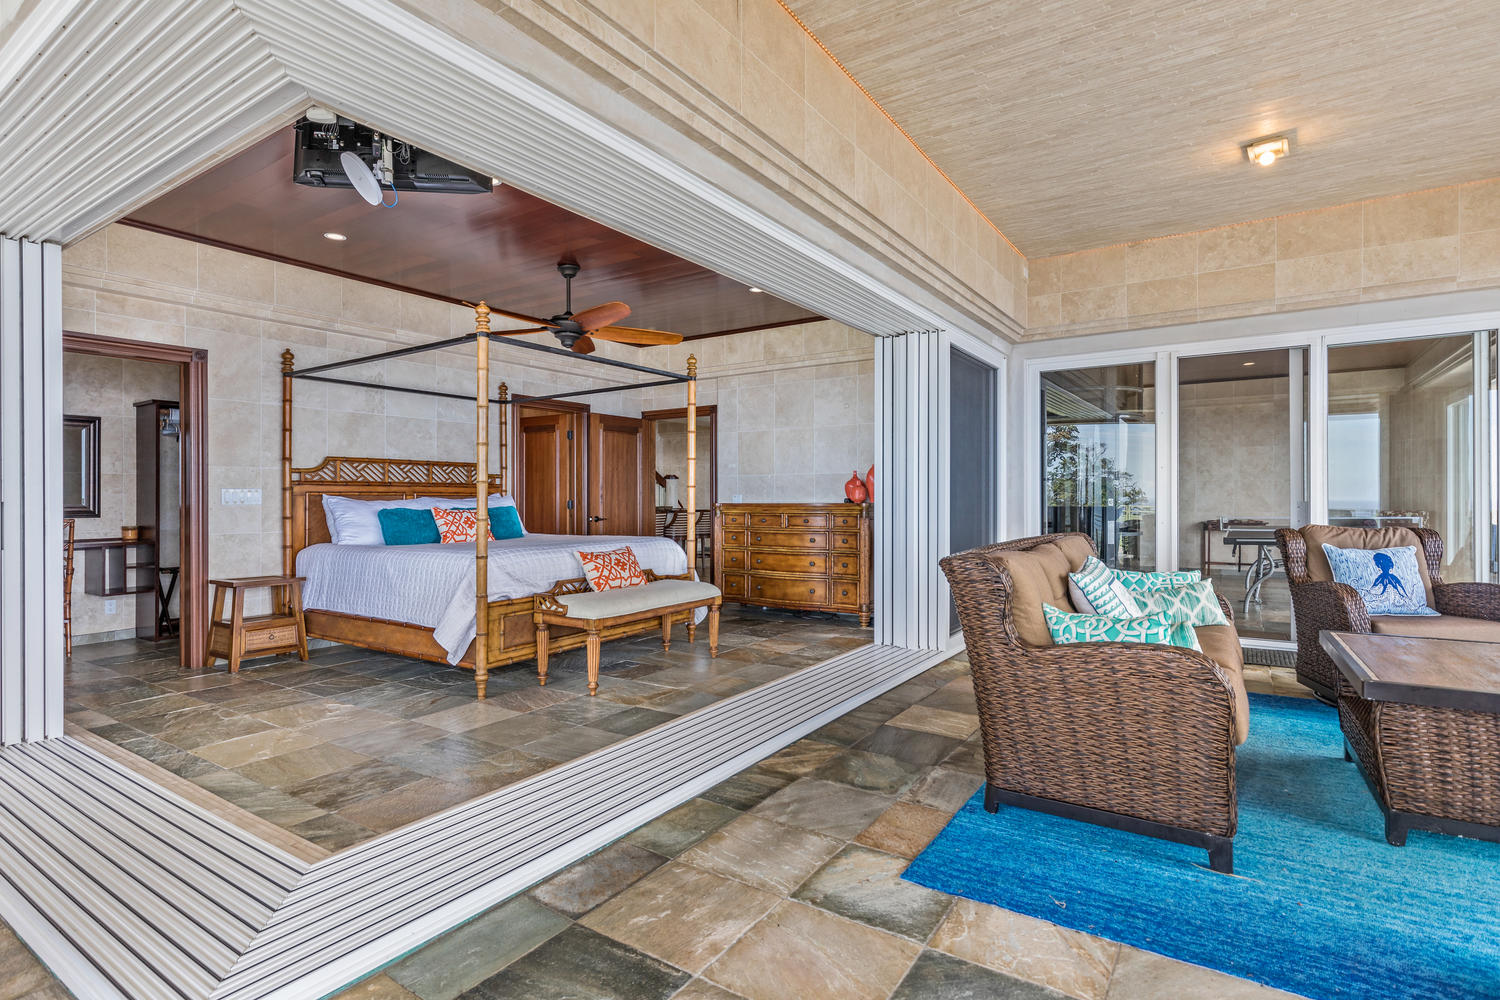 Bedroom with corner-free pocket doors to optimize view and natural light with private covered lanai.